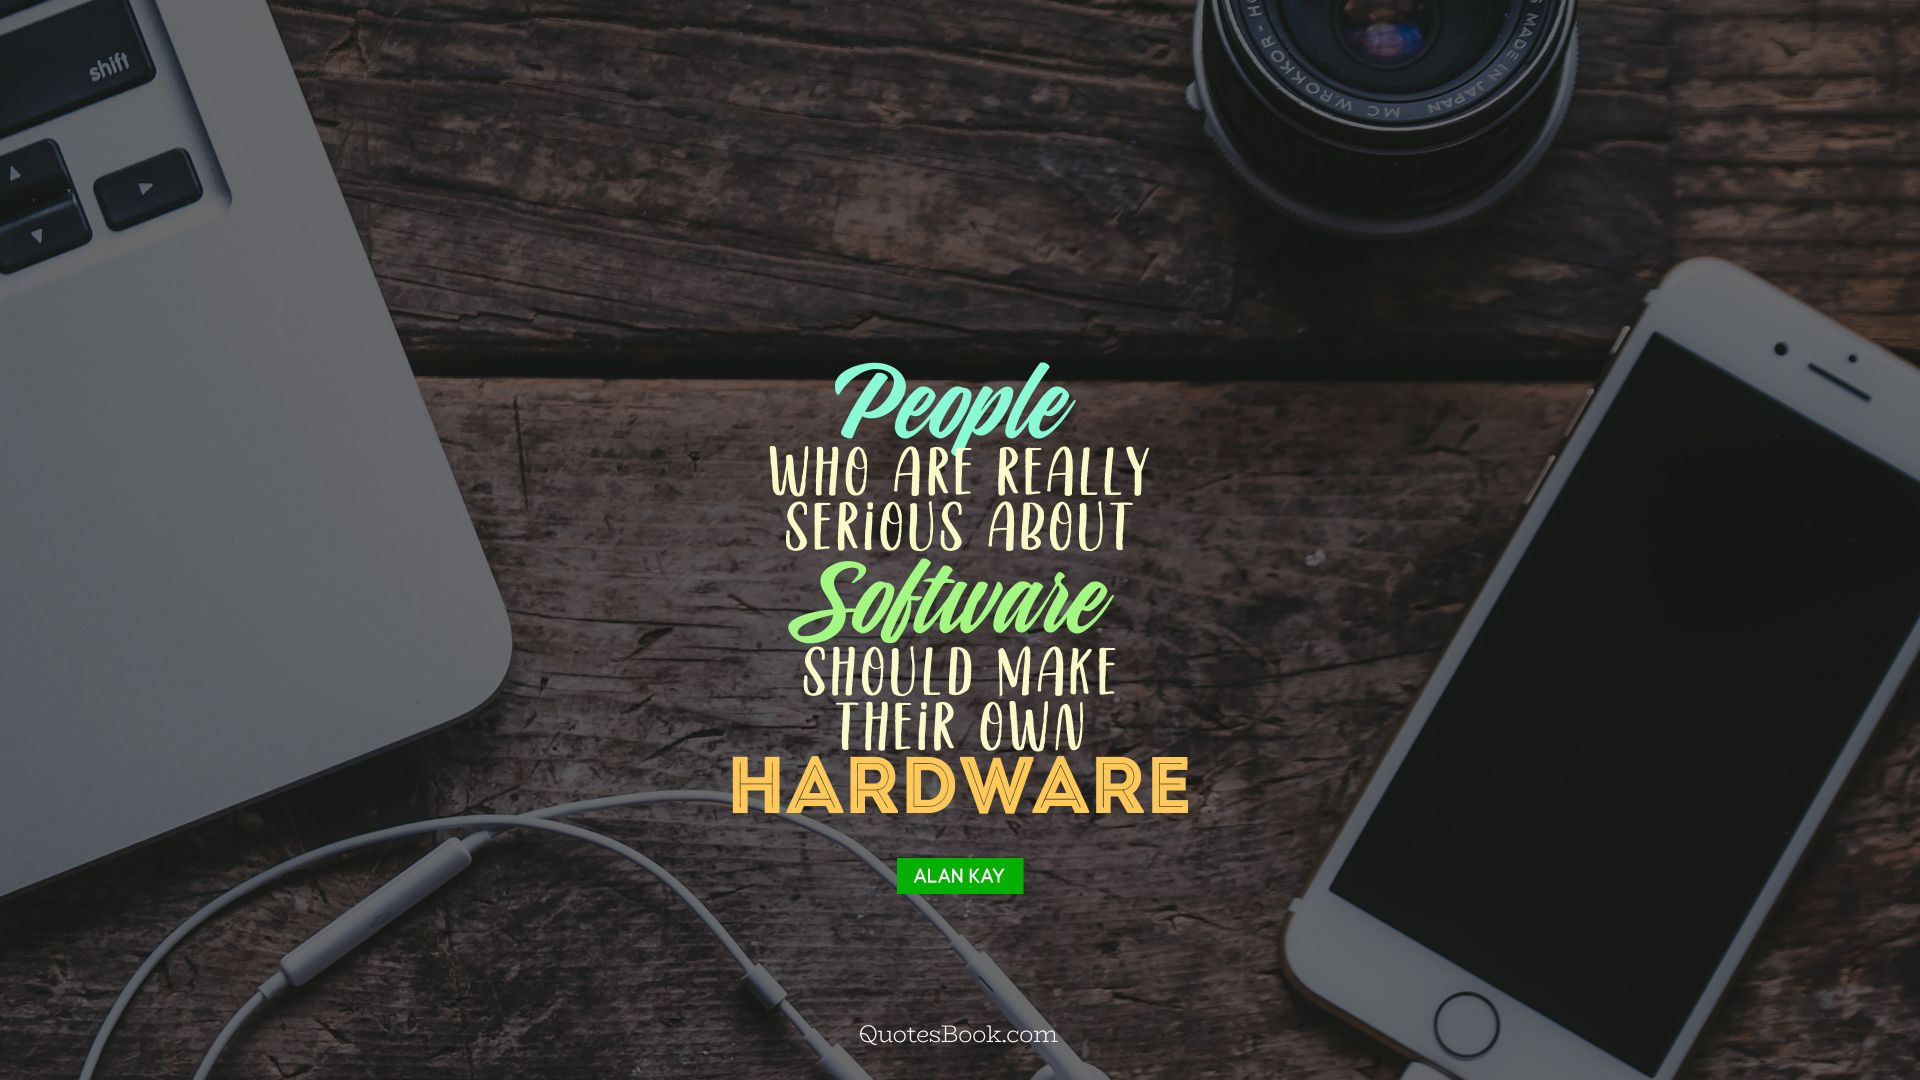 People who are really serious about software should make their own hardware. - Quote by Alan Kay